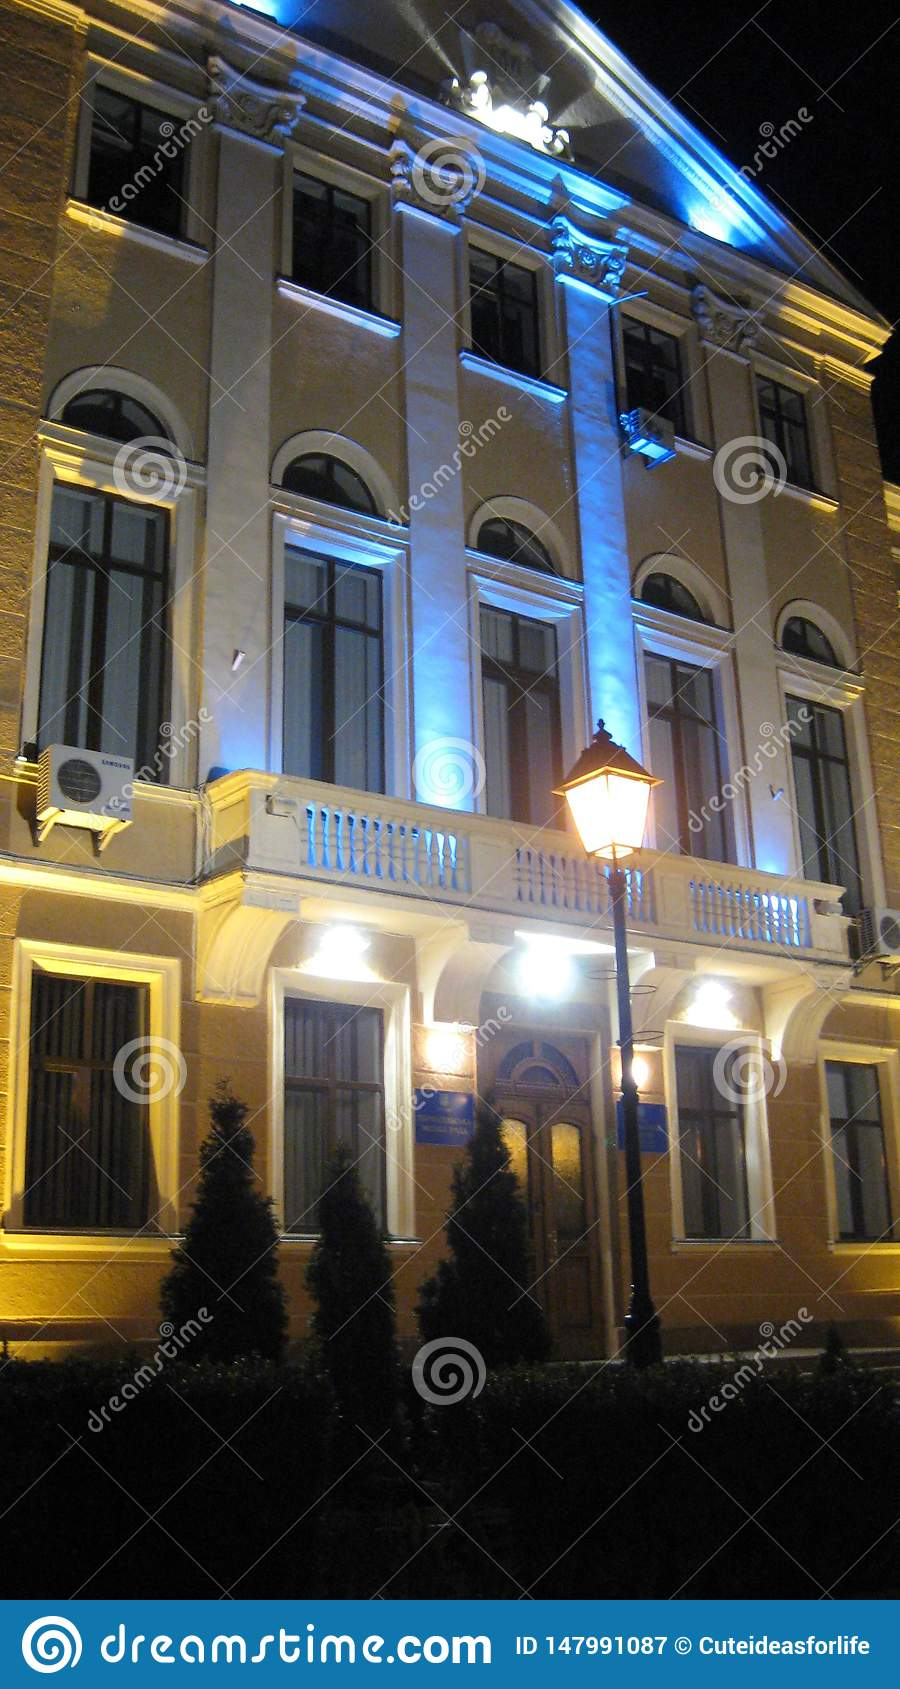 Ternopil, Ukraine - March 14, 2008: The city council building is highlighted in the evening by the national colors of Ukraine